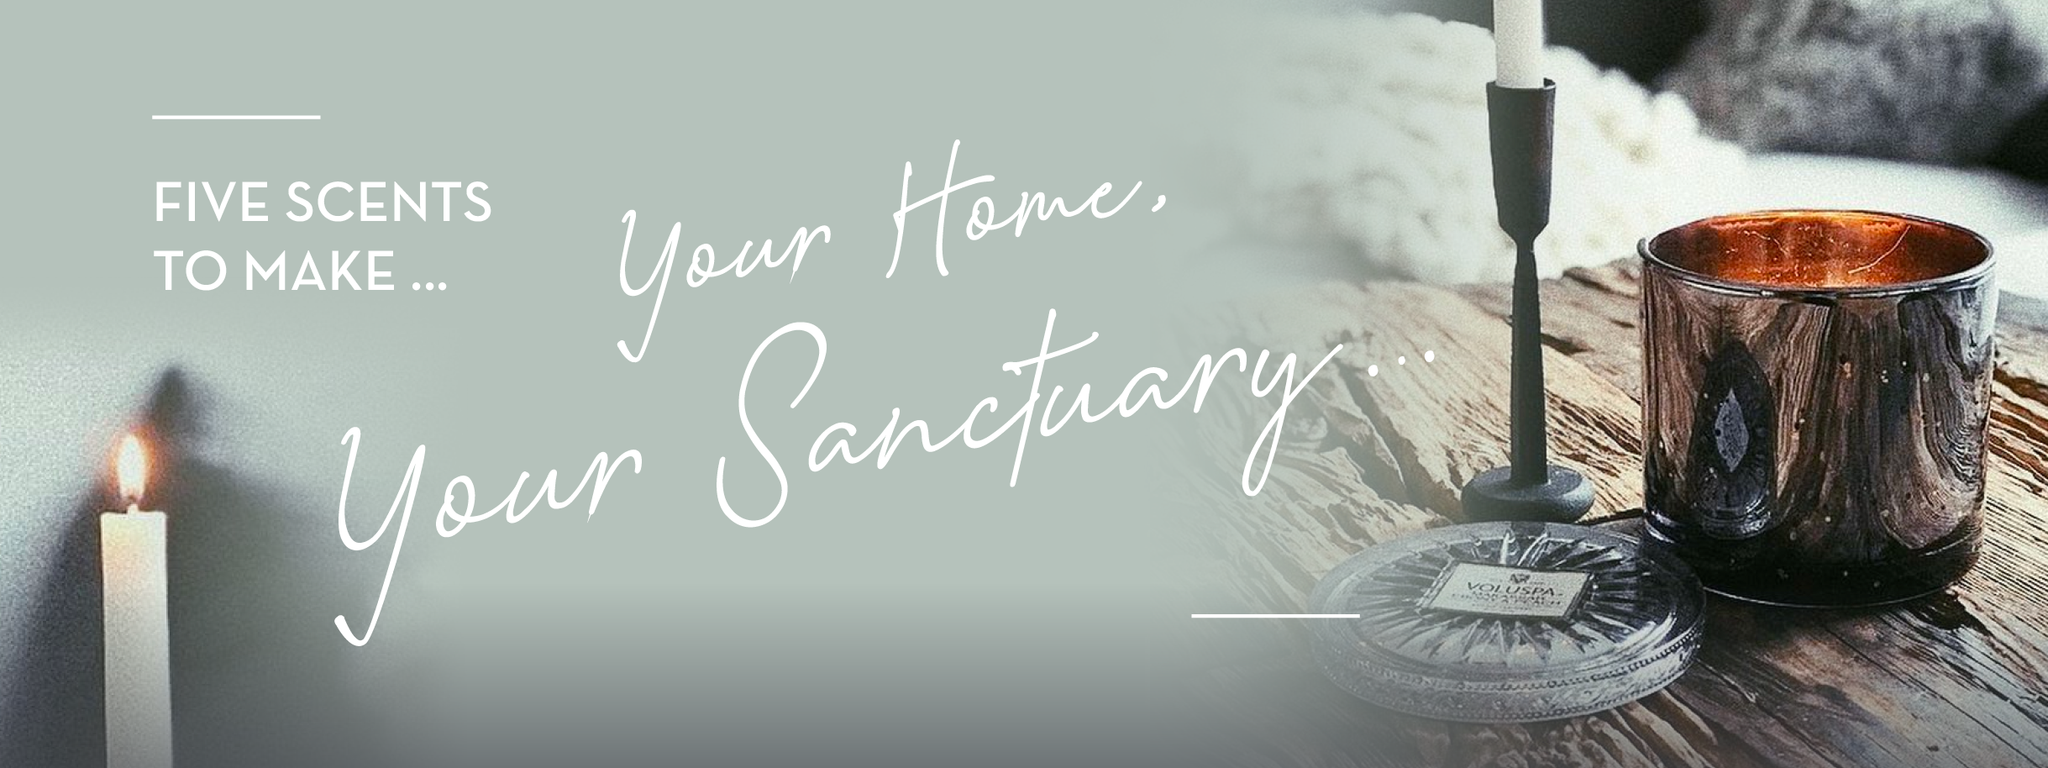 5 Scents to Make Your Home Your Sanctuary